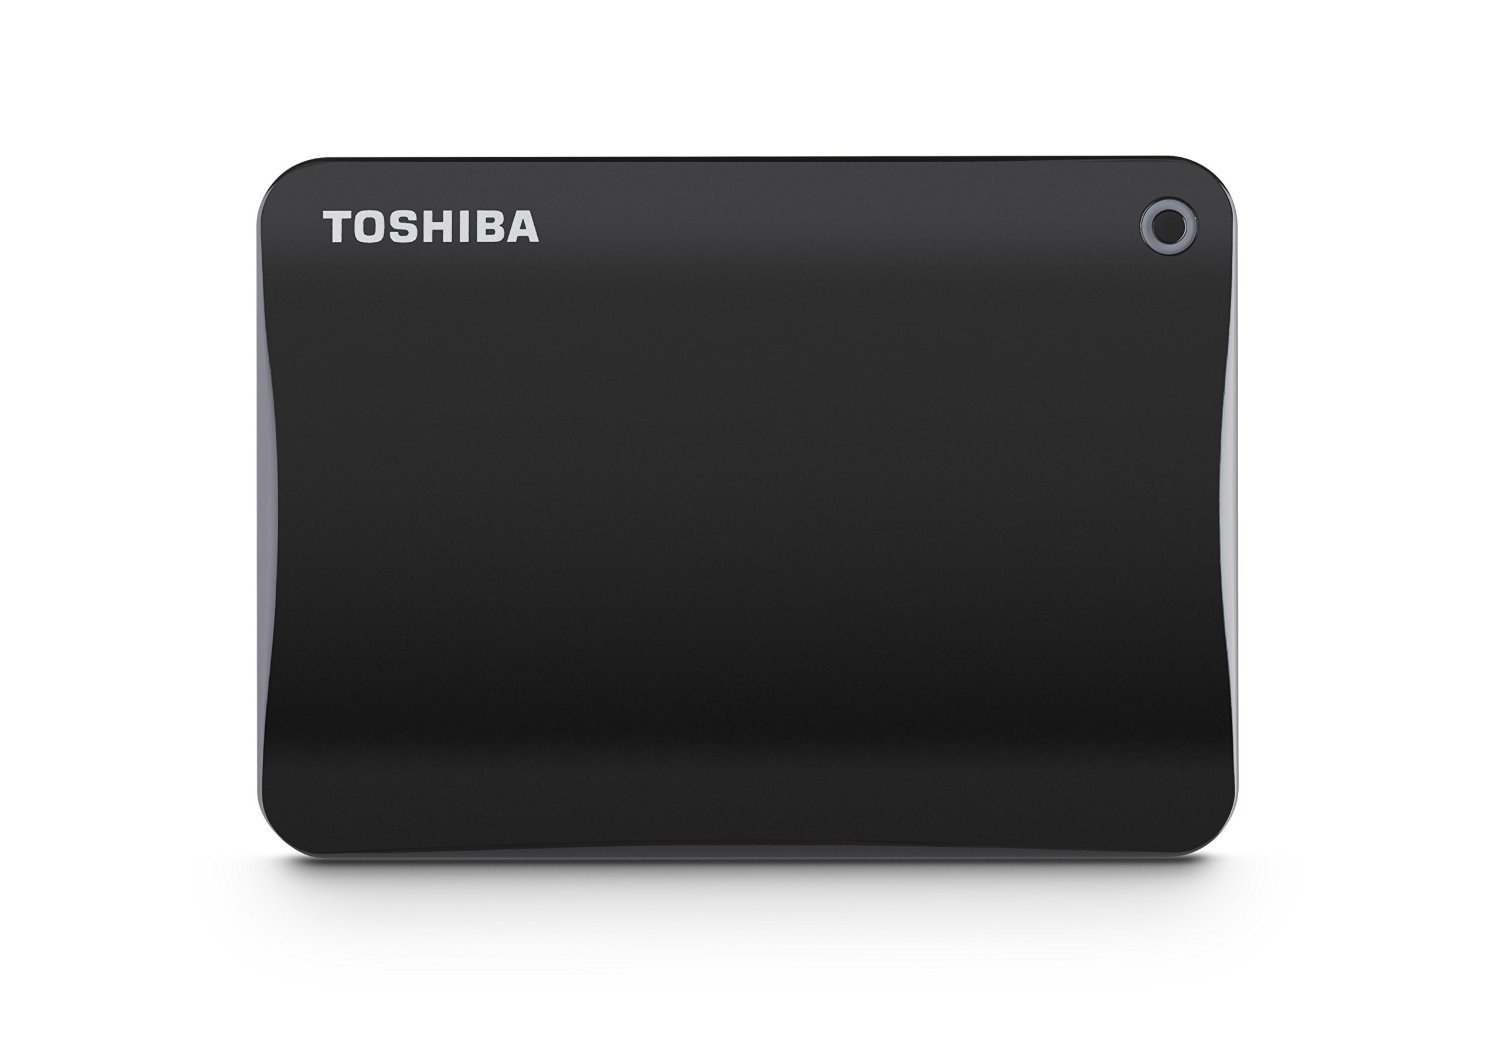 Toshiba Canvio Connect II 1TB Portable External Hard Drive USB 3.0 Basics